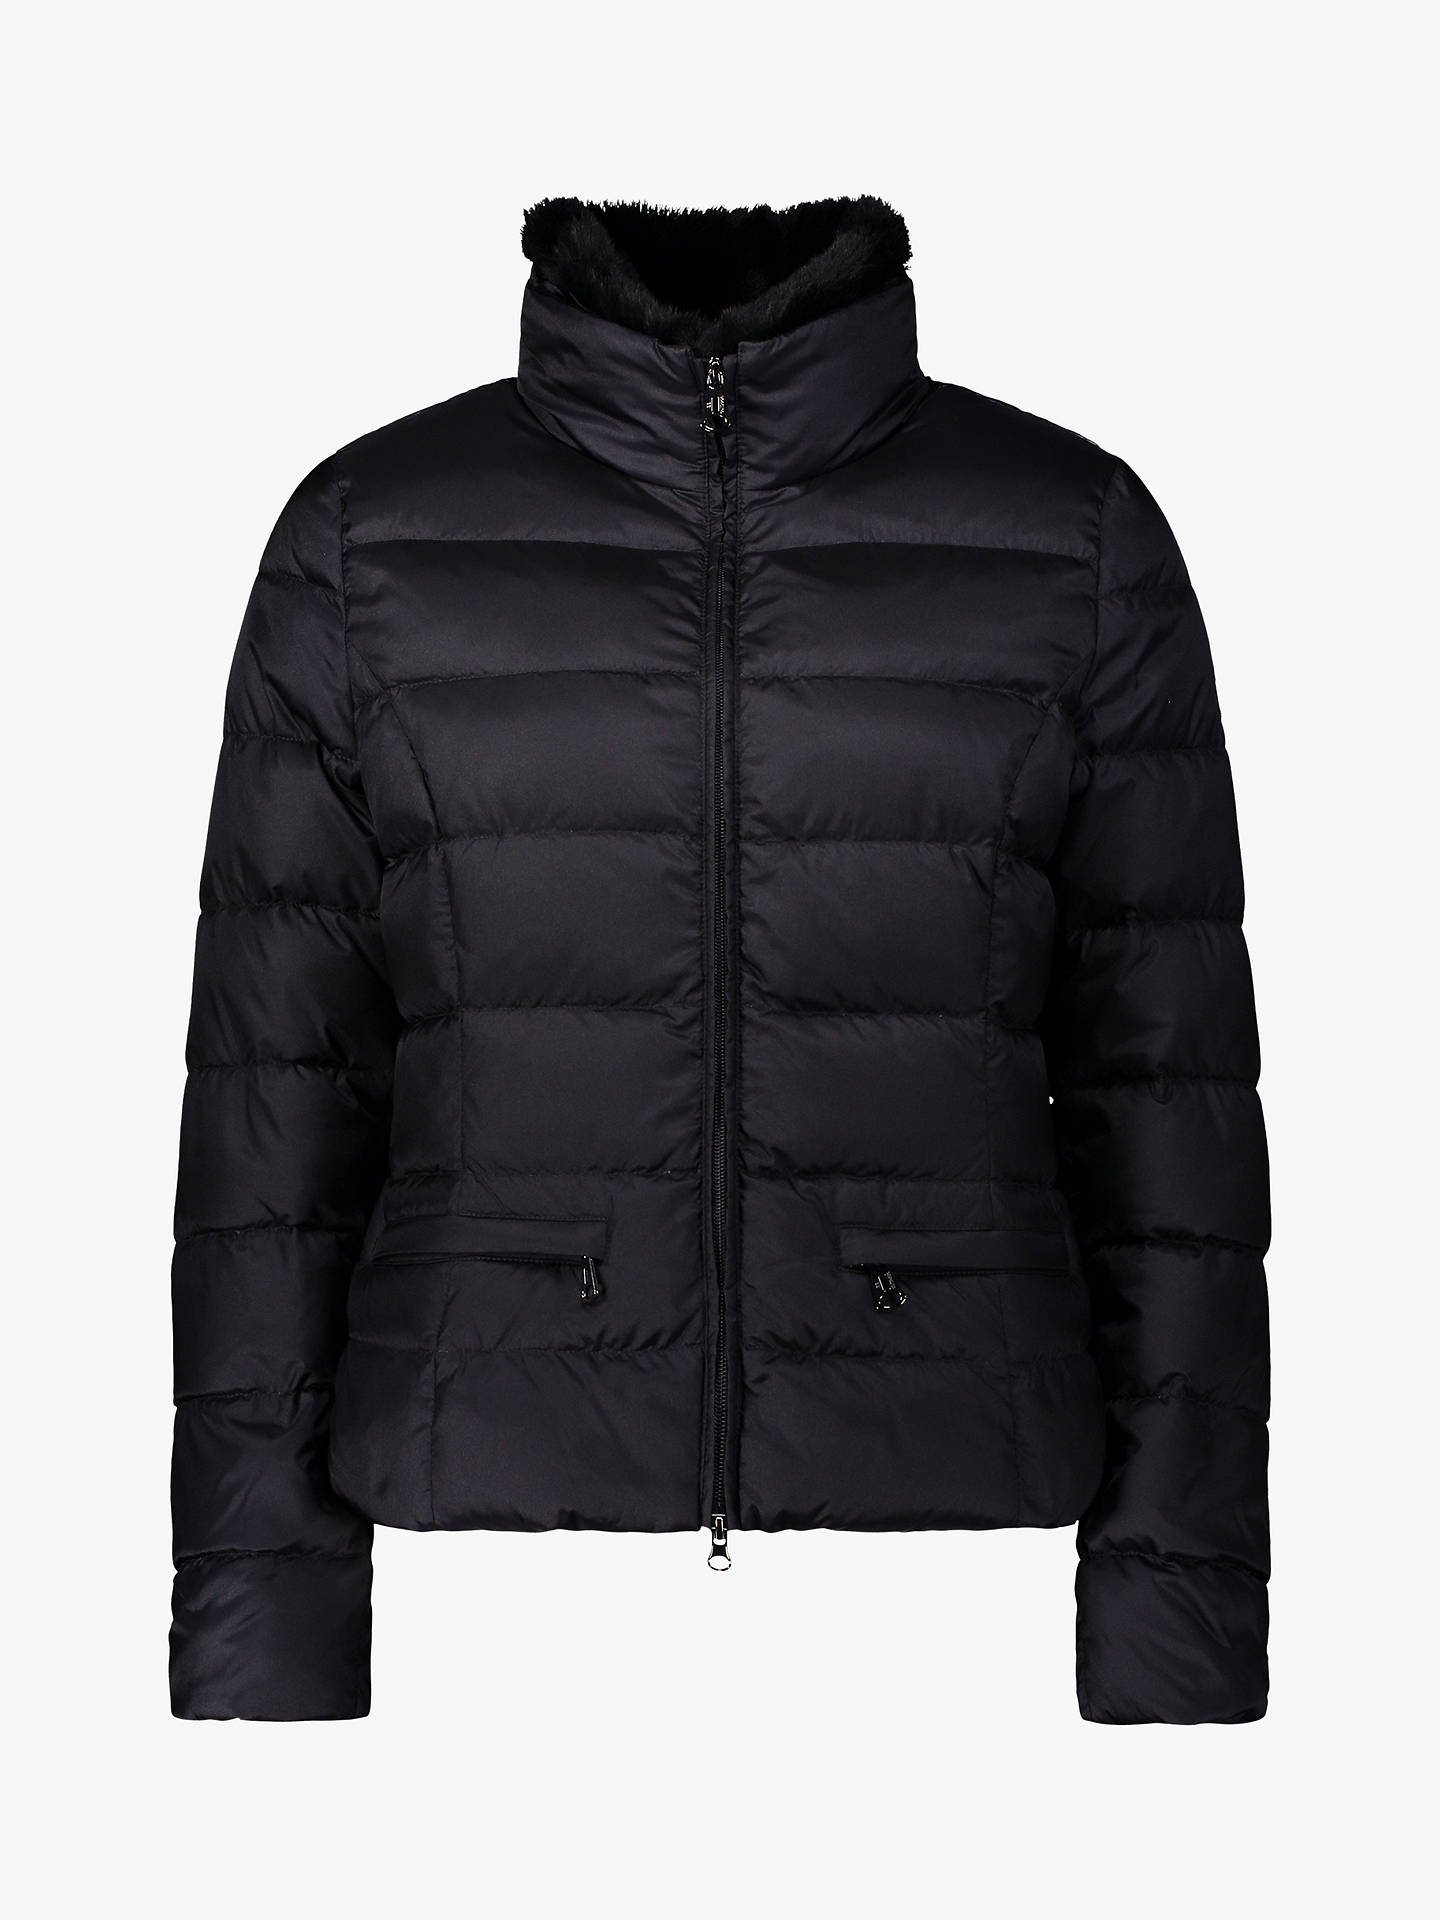 BuyBetty Barclay Quilted Down Jacket, Deep Navy, 14 Online at johnlewis.com